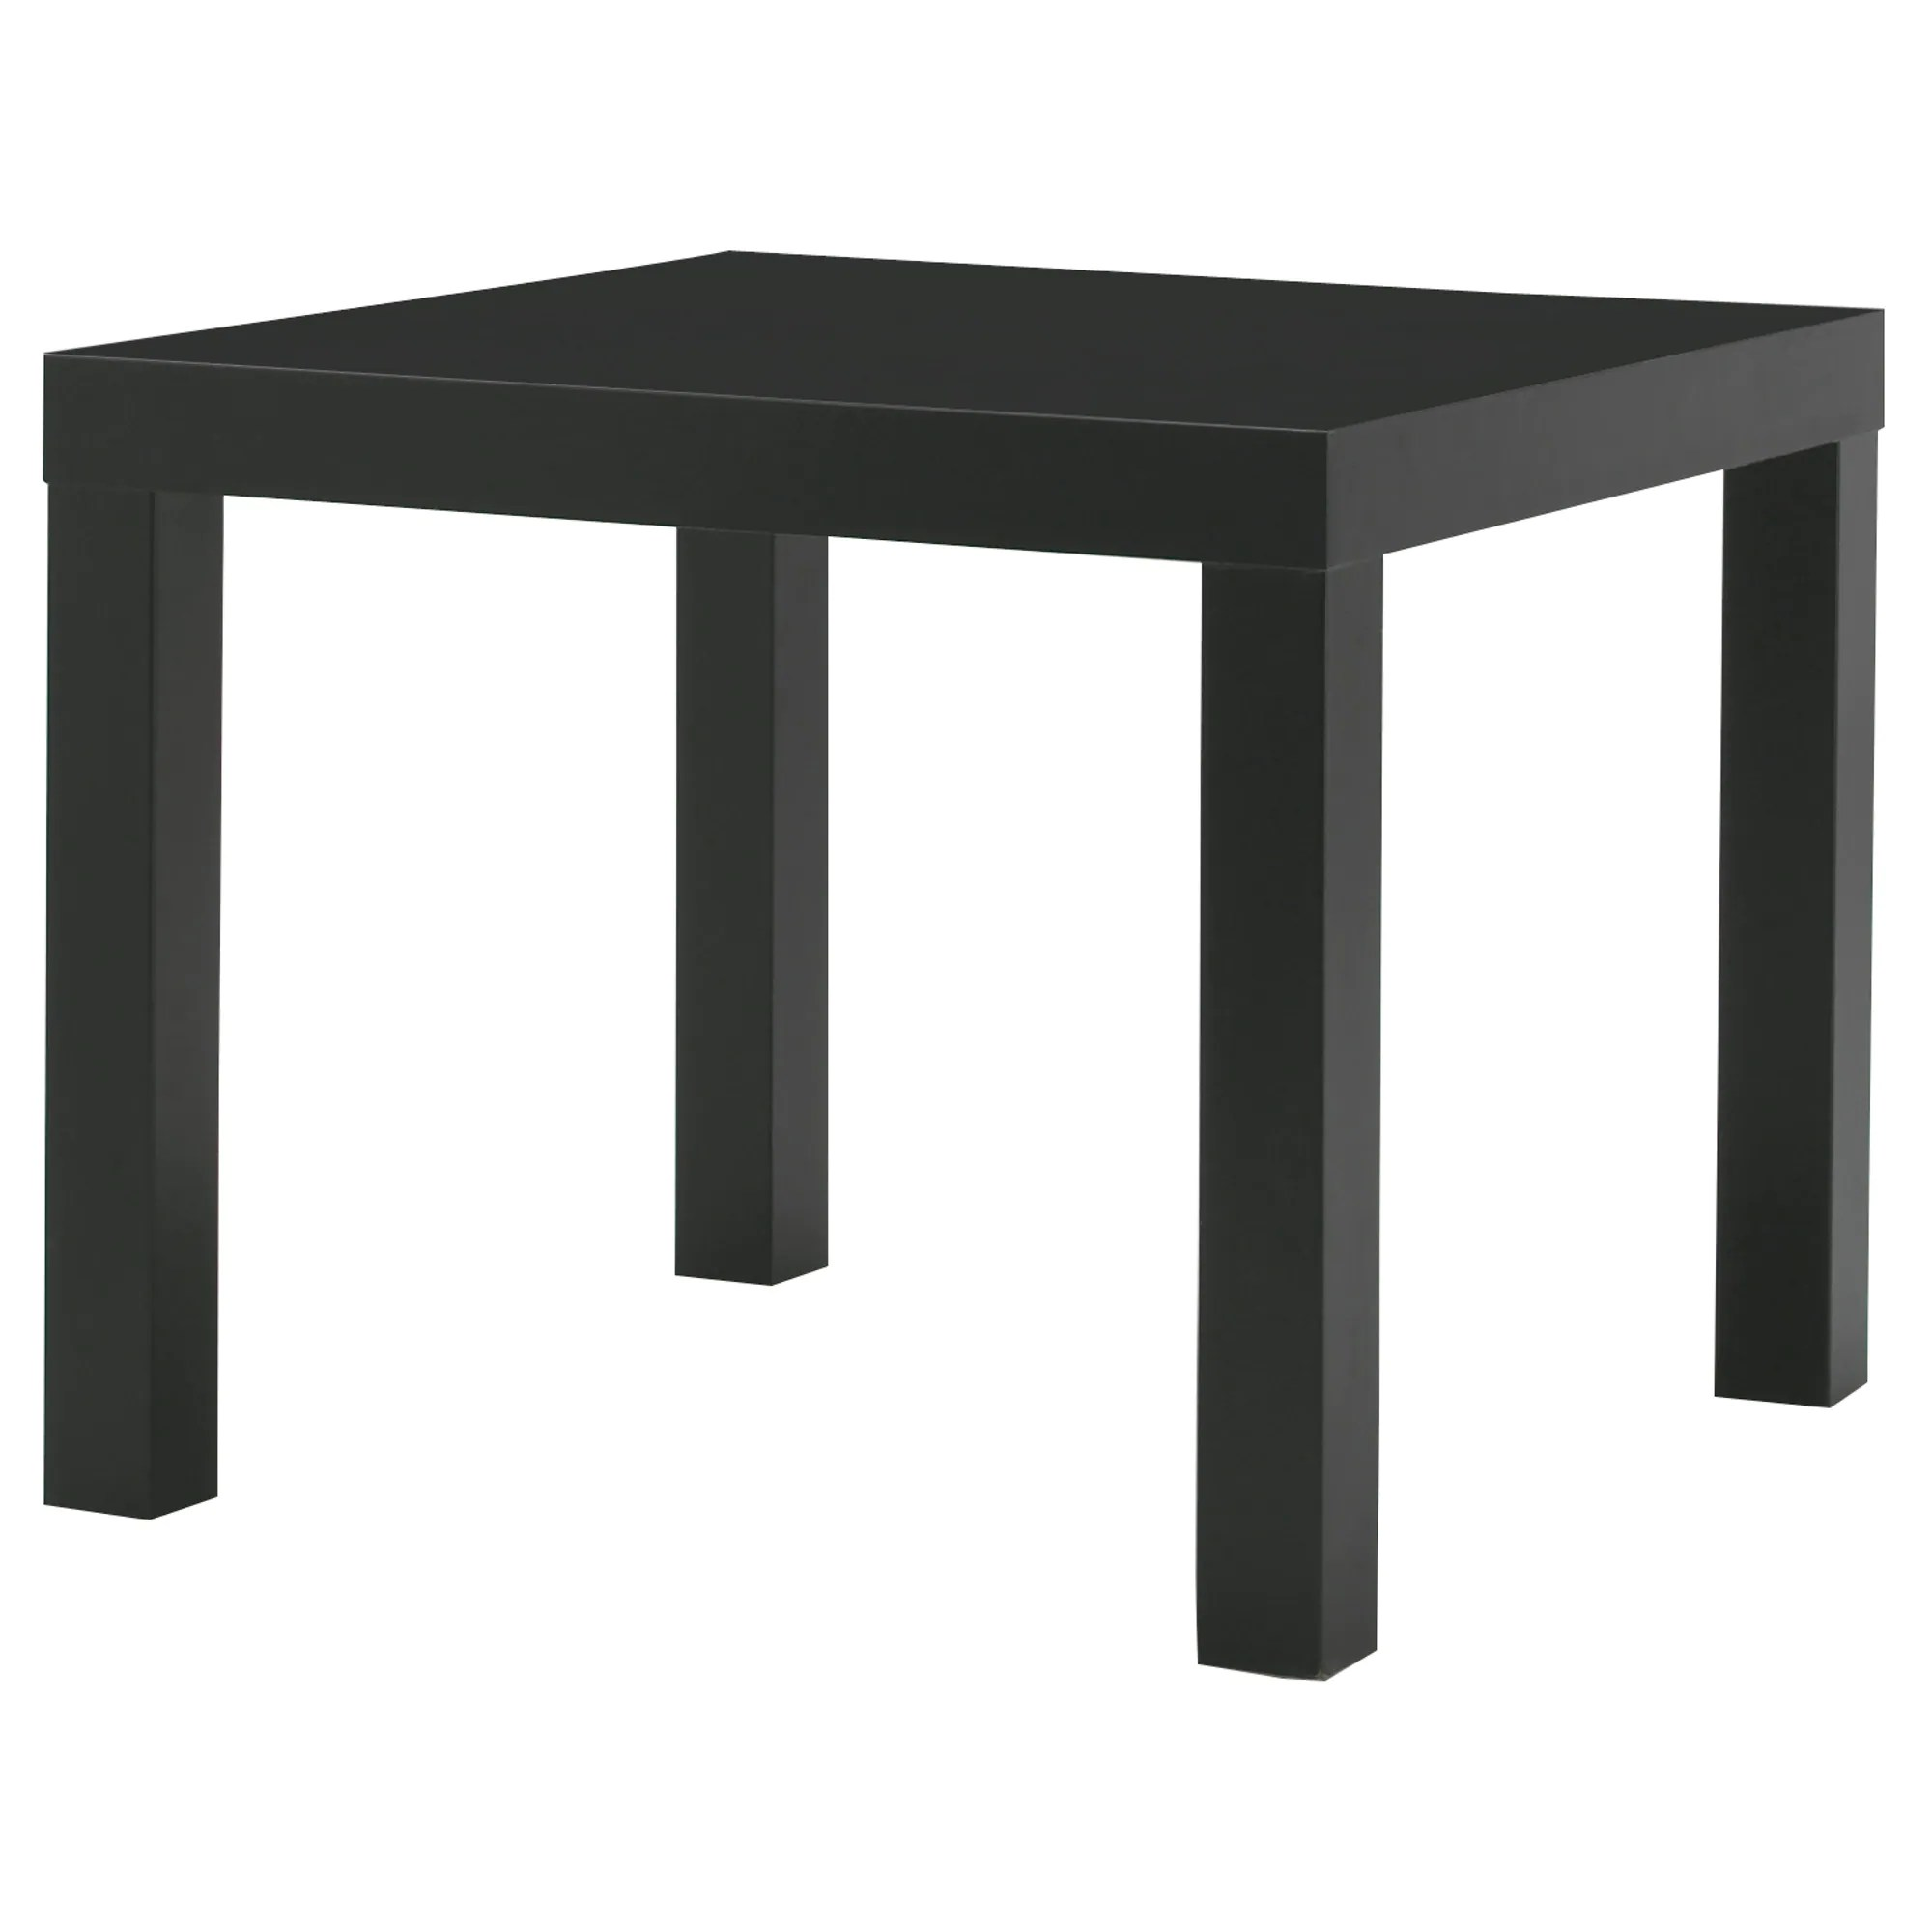 Ikea Table Lack Side Table Black